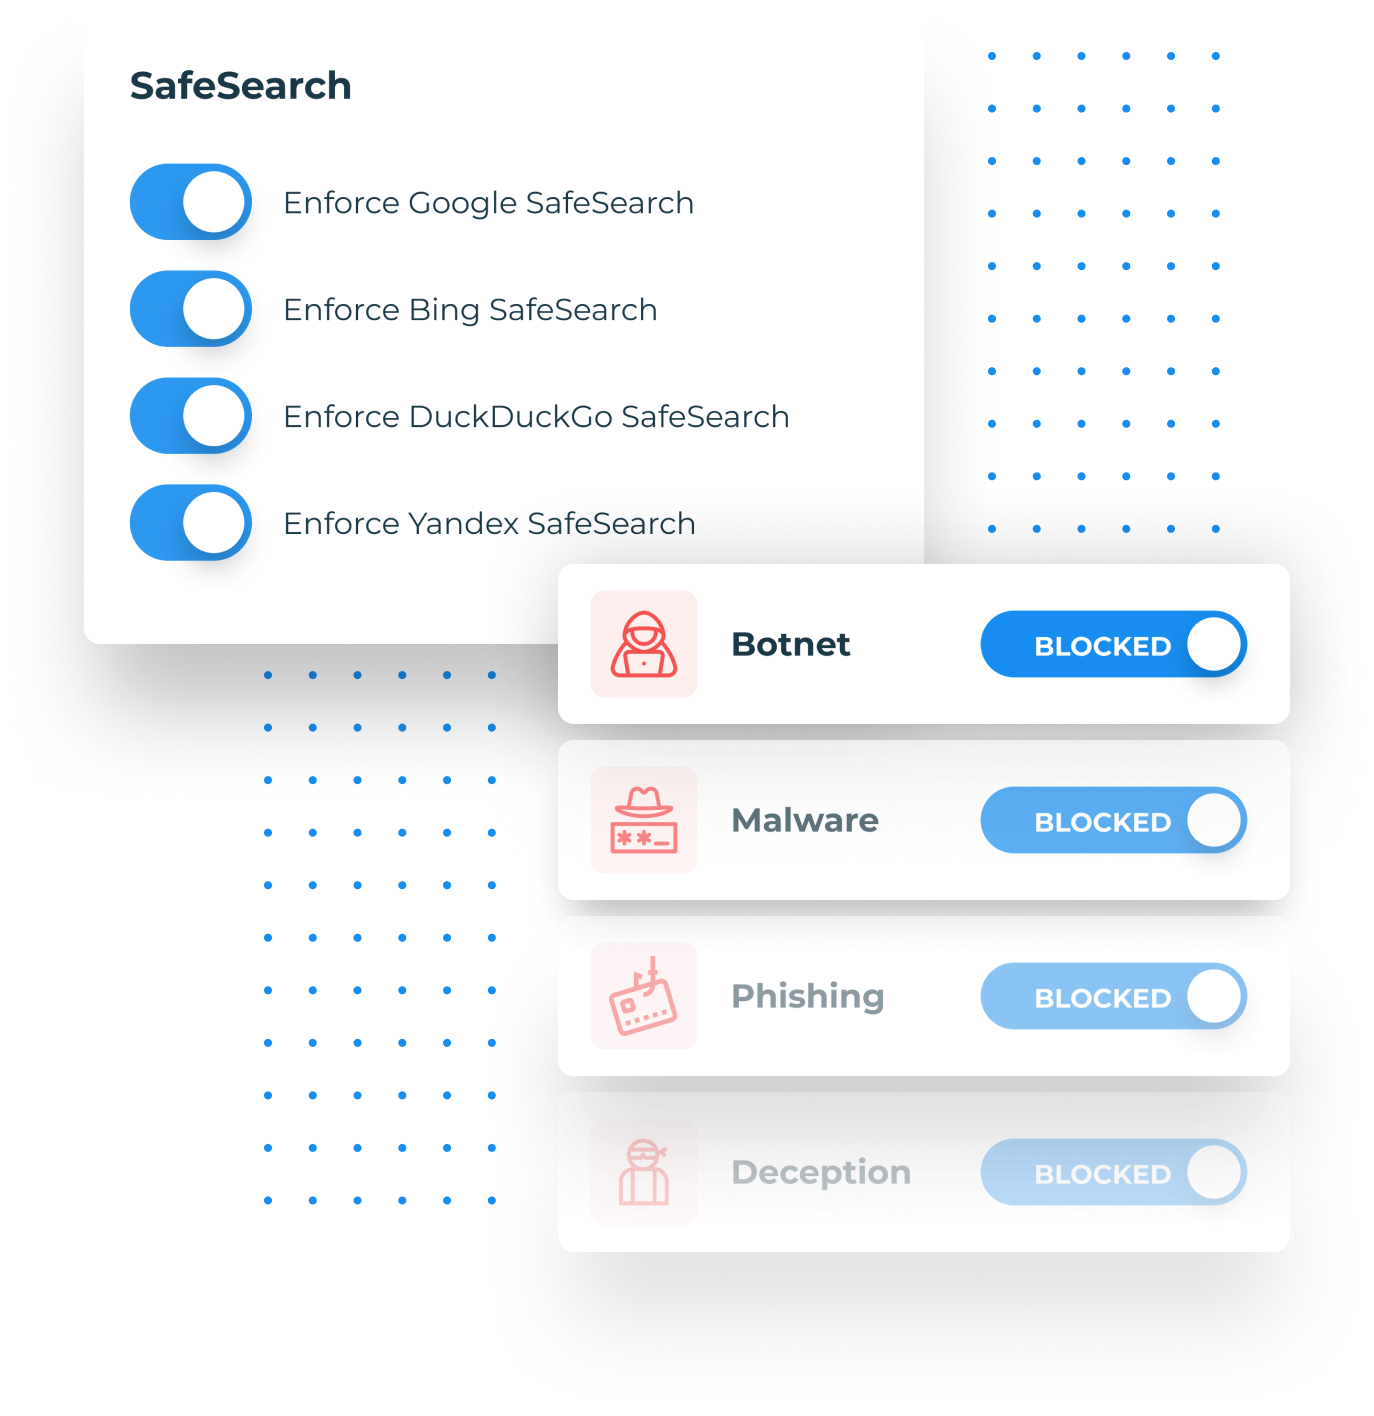 DNSFilter safe search and threat blocking